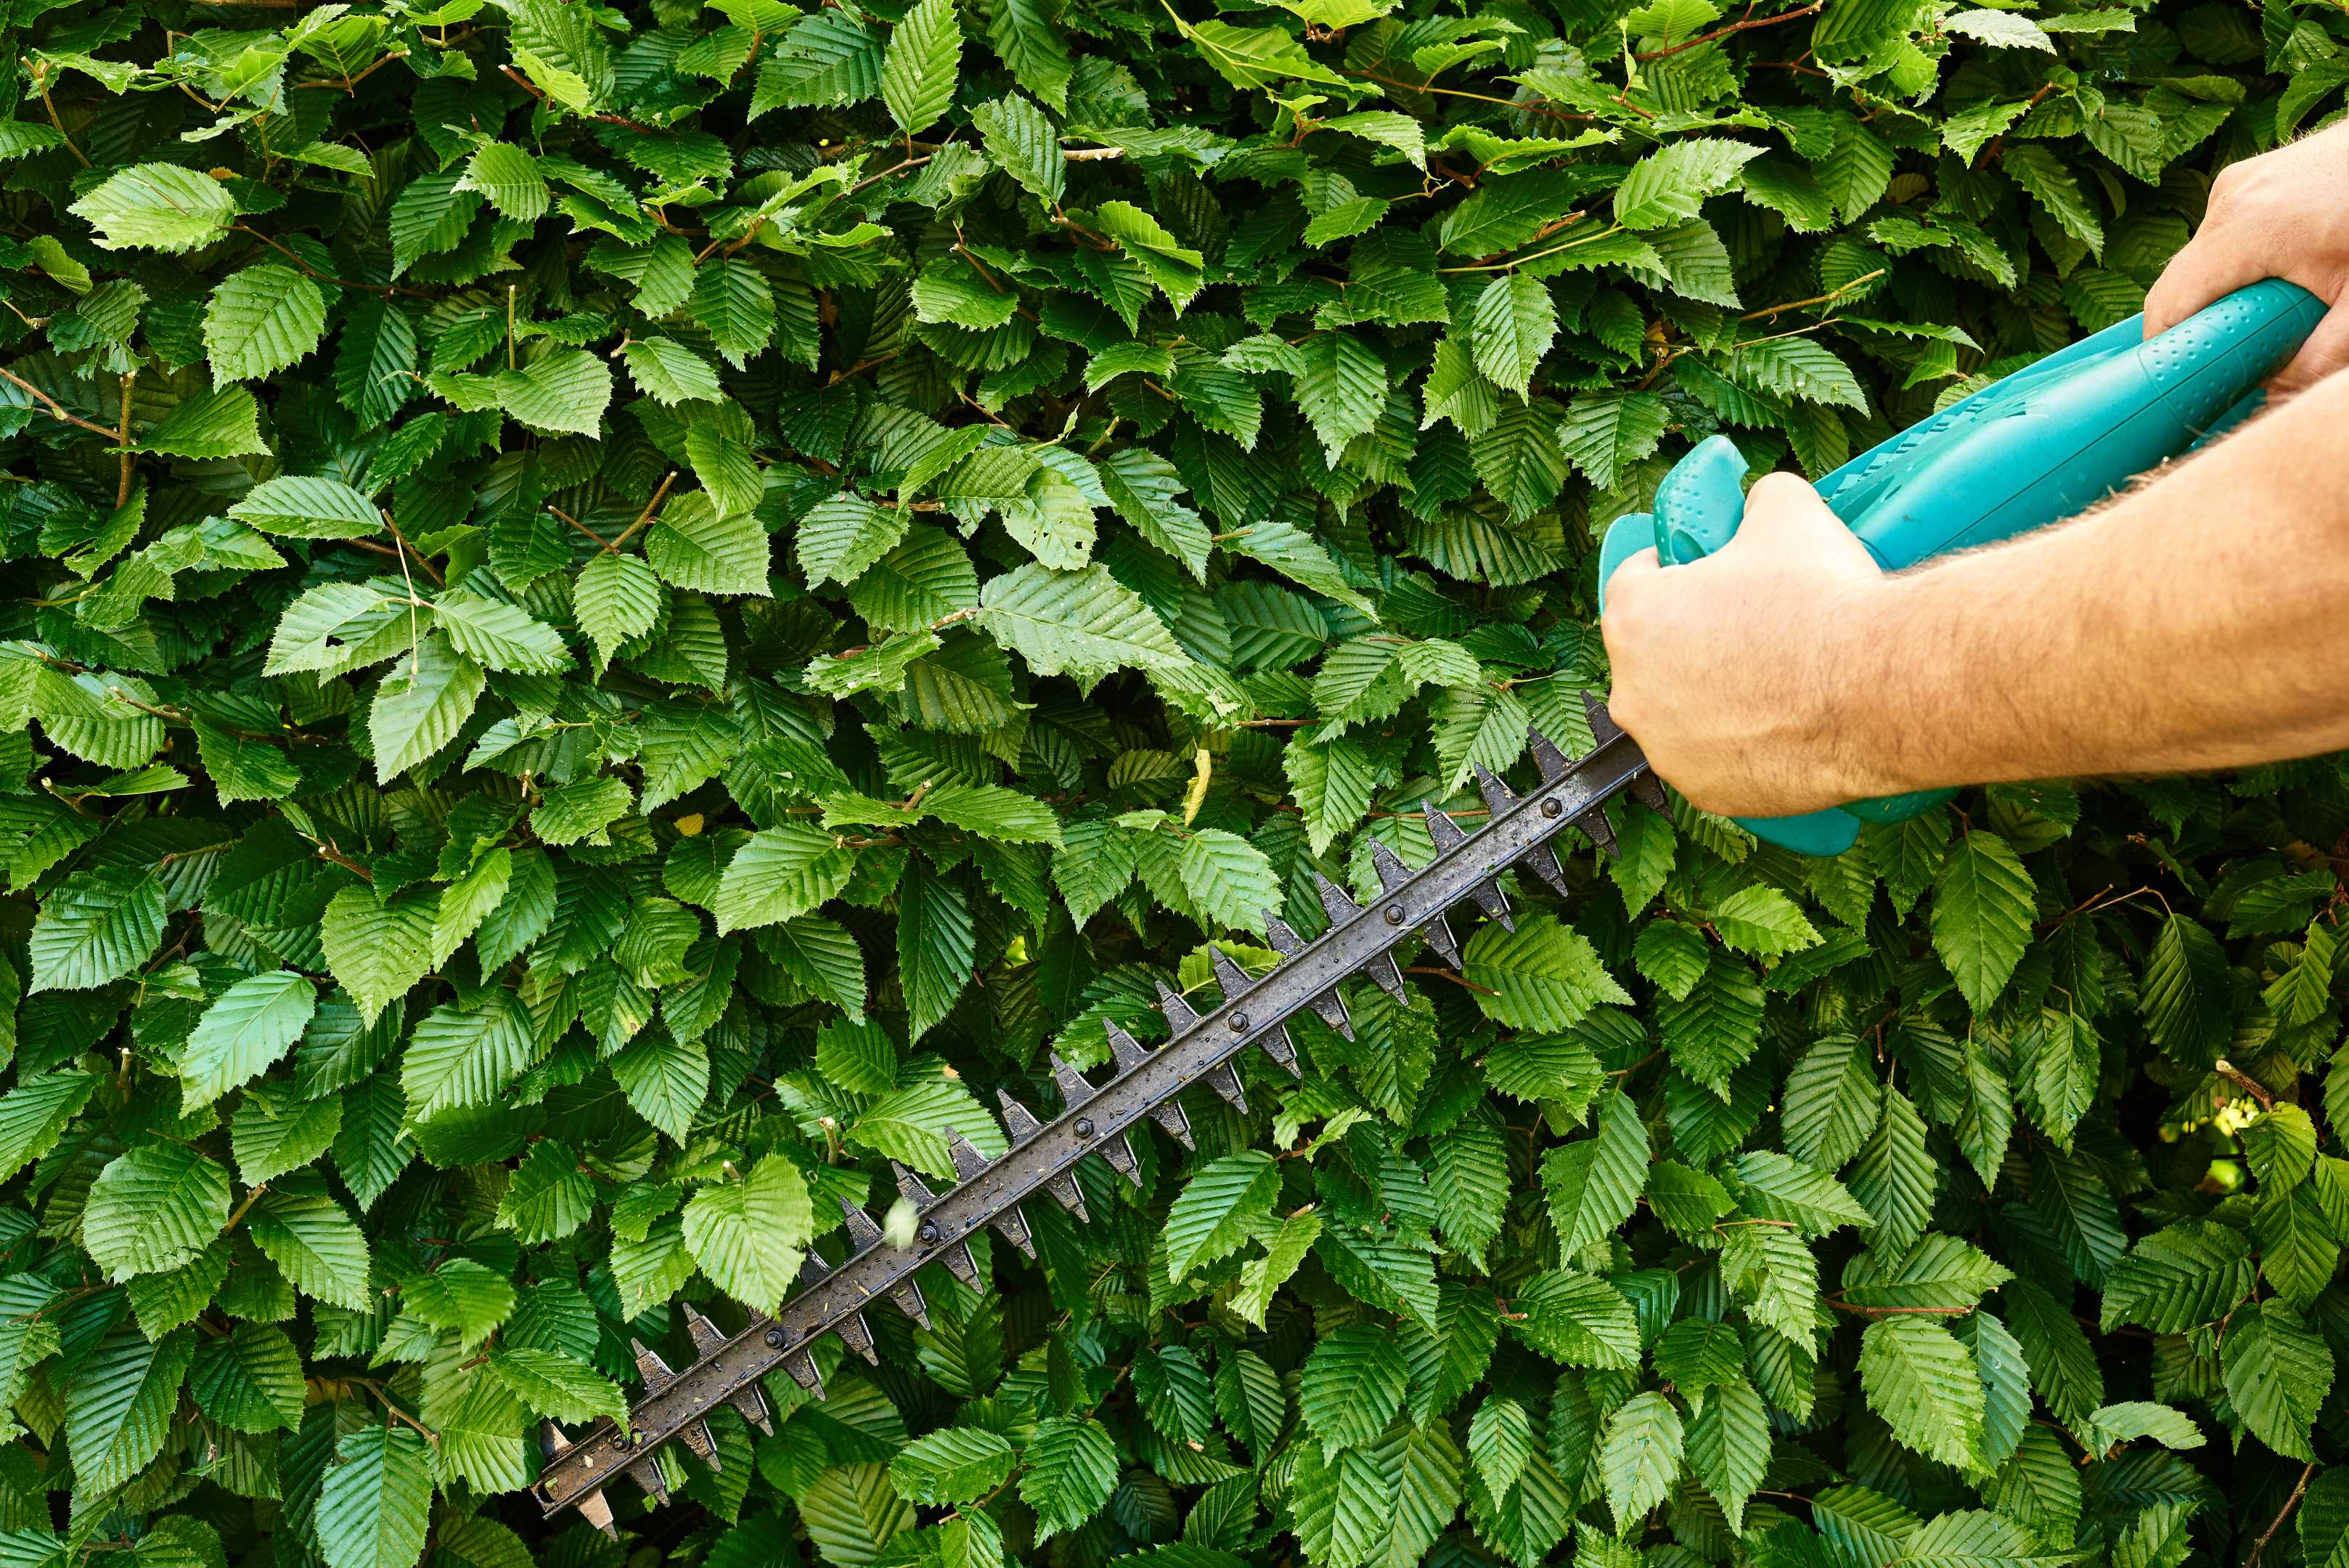 Trimming Of Bushes